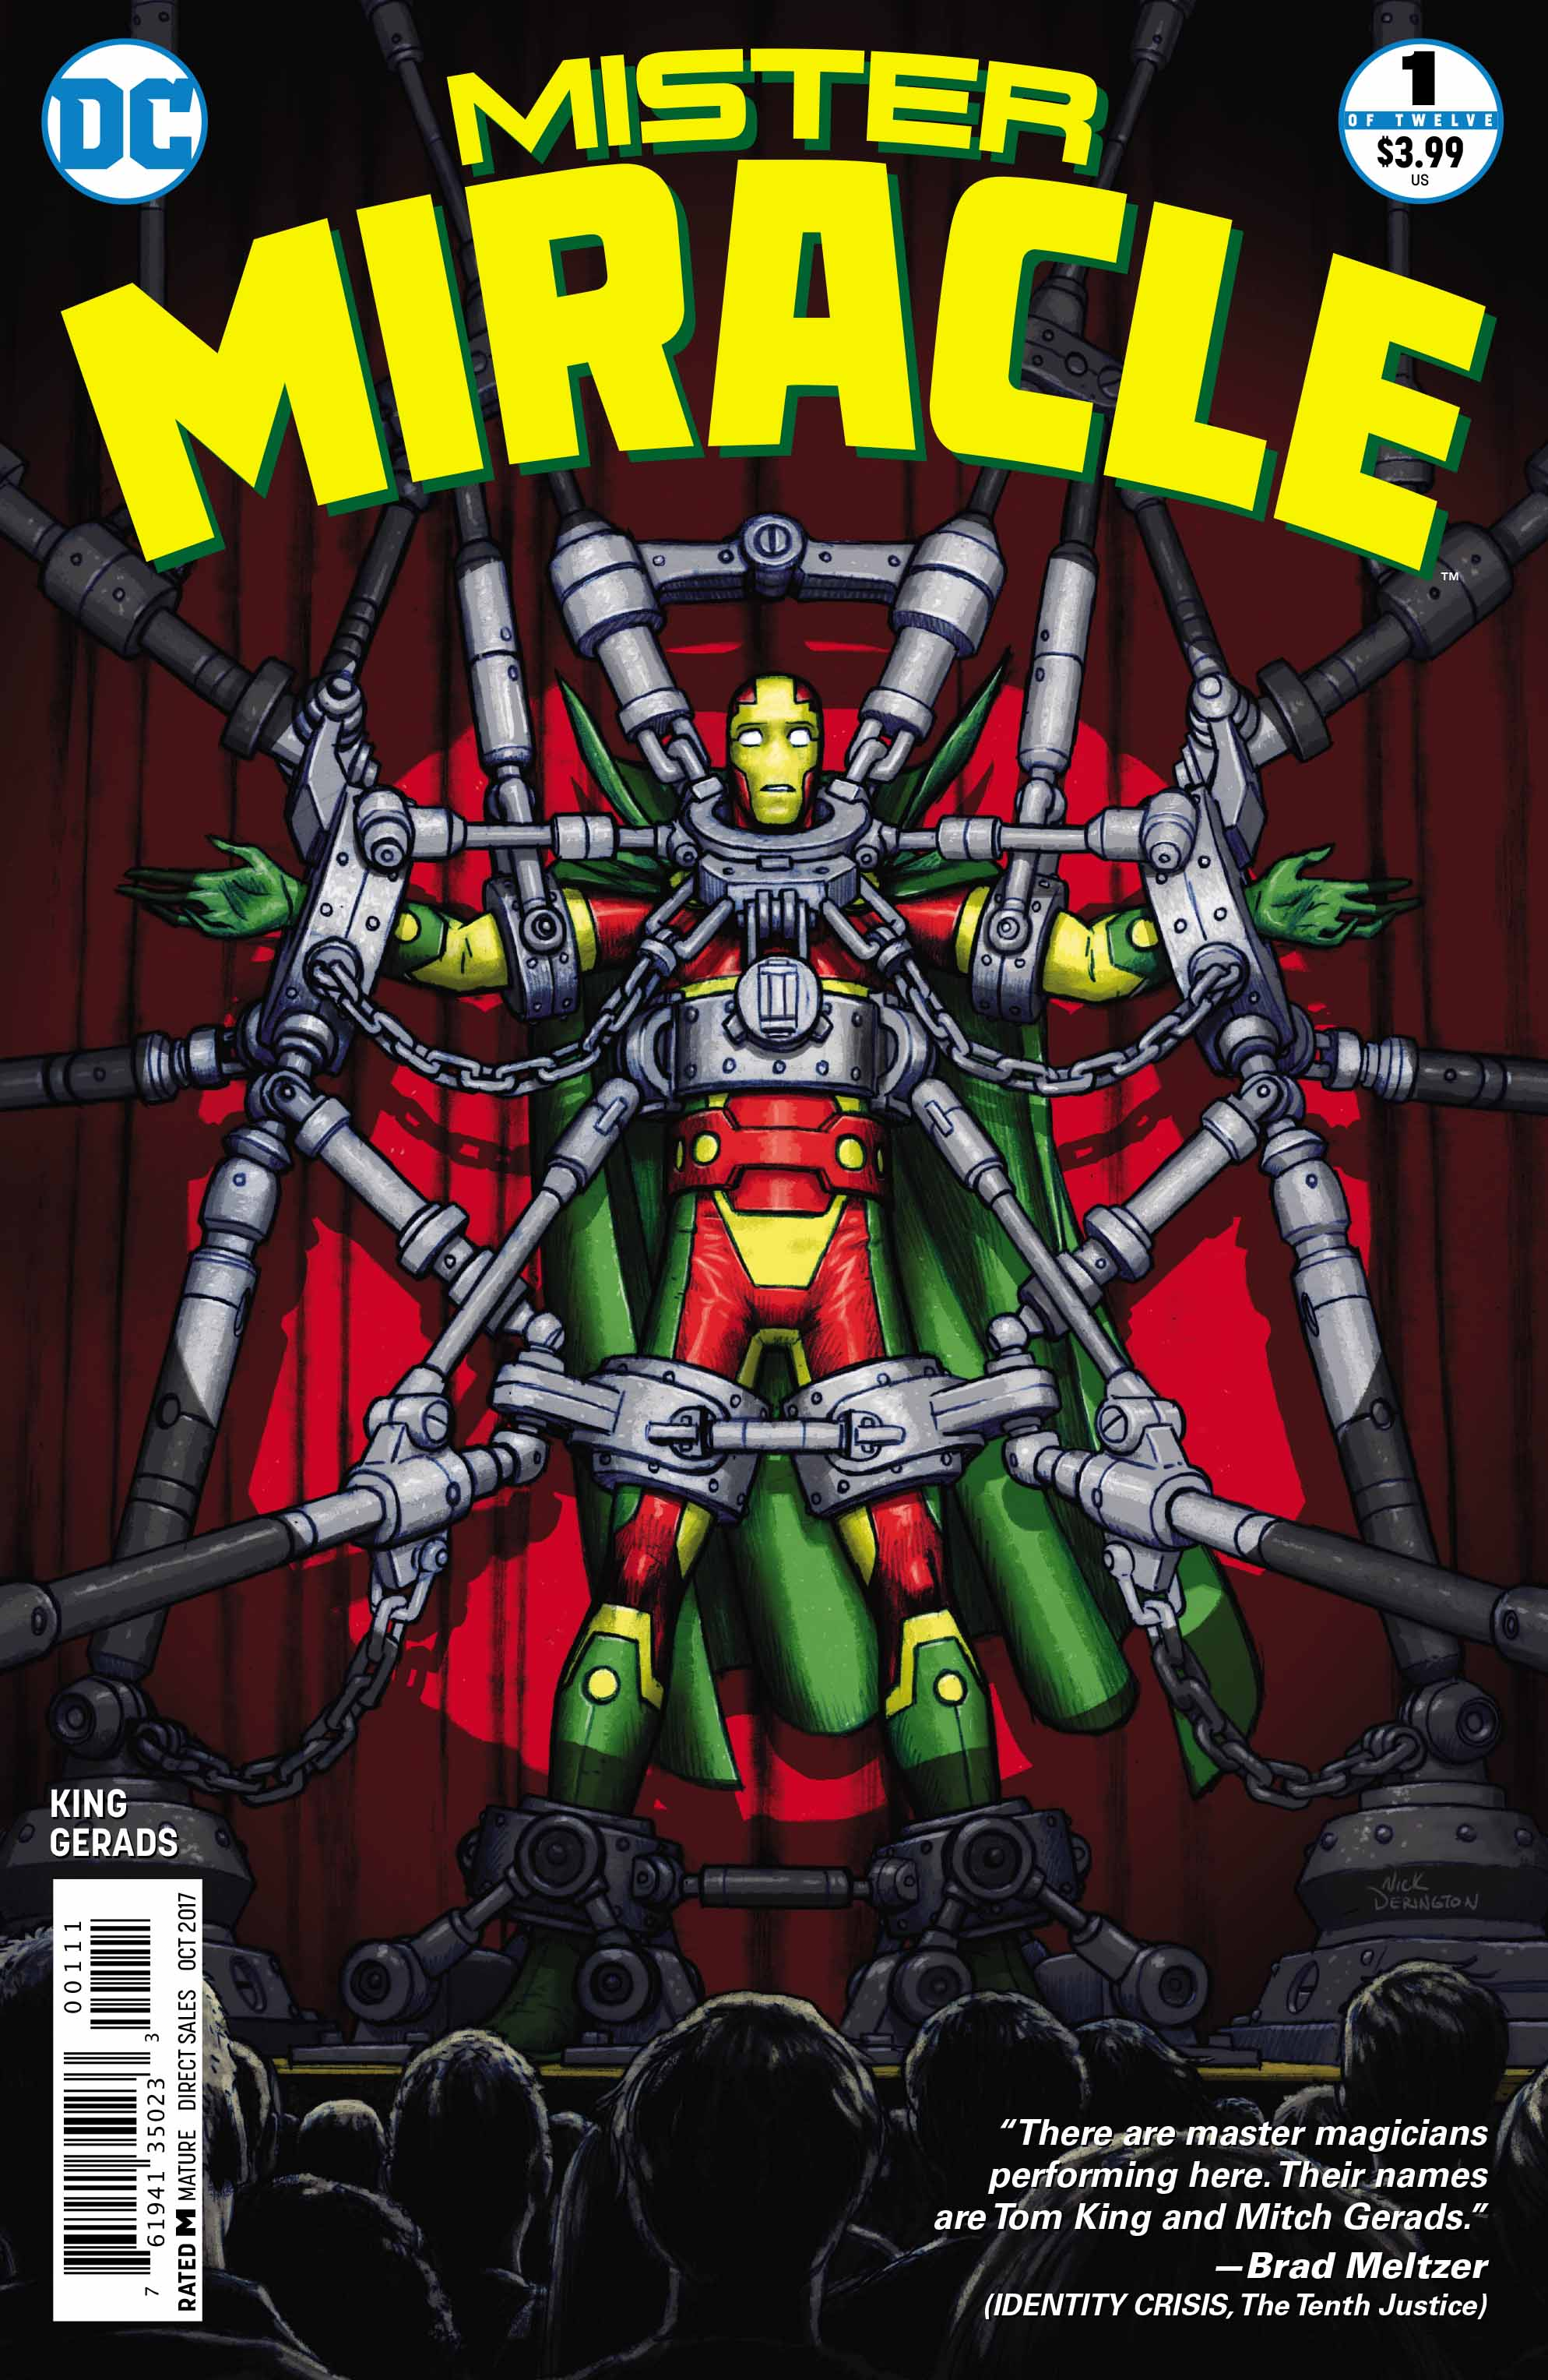 Cover to 'Mister Miracle' #1. Art by Nick Derington/DC Comics